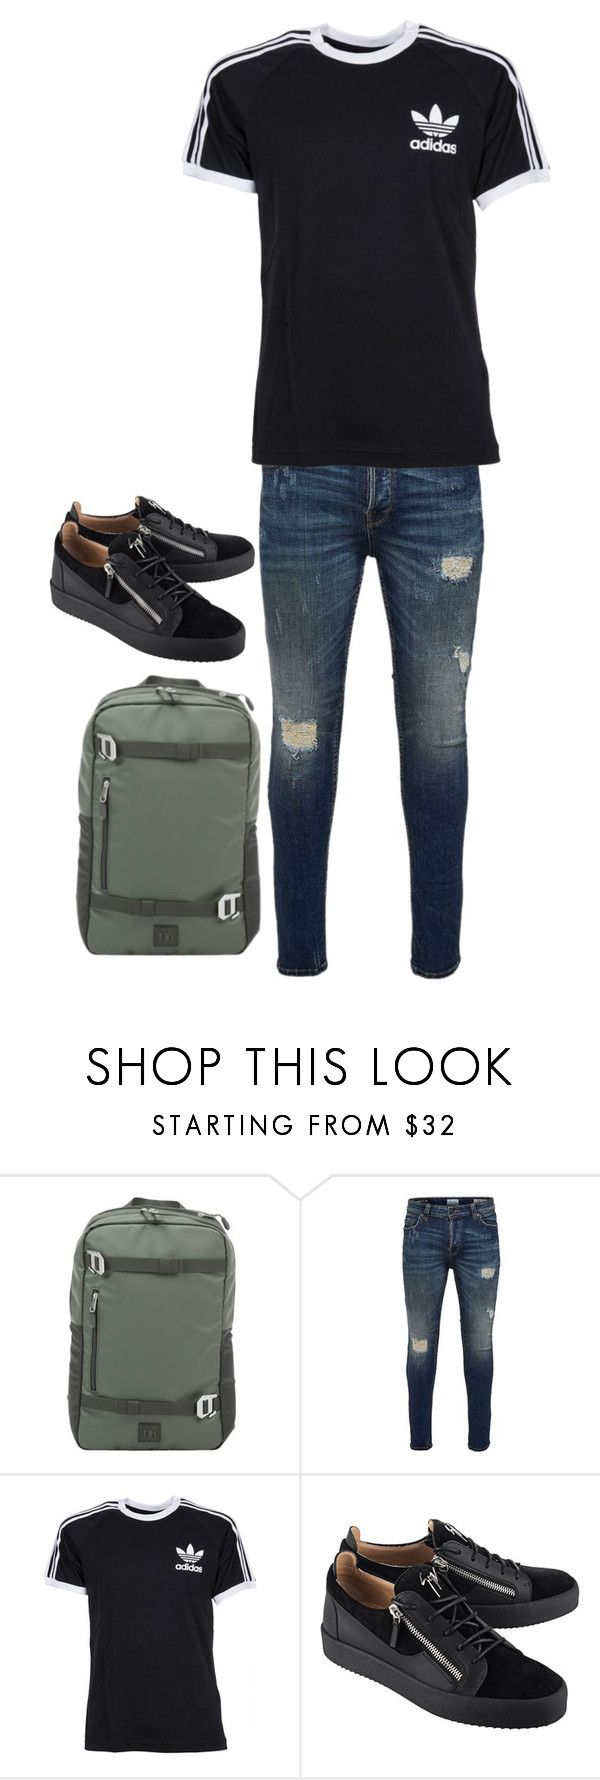 """""""Untitled #154"""" by juliapilzs on Polyvore featuring Only & Sons, adidas, Giuseppe Zanotti, men's fashion and menswear"""